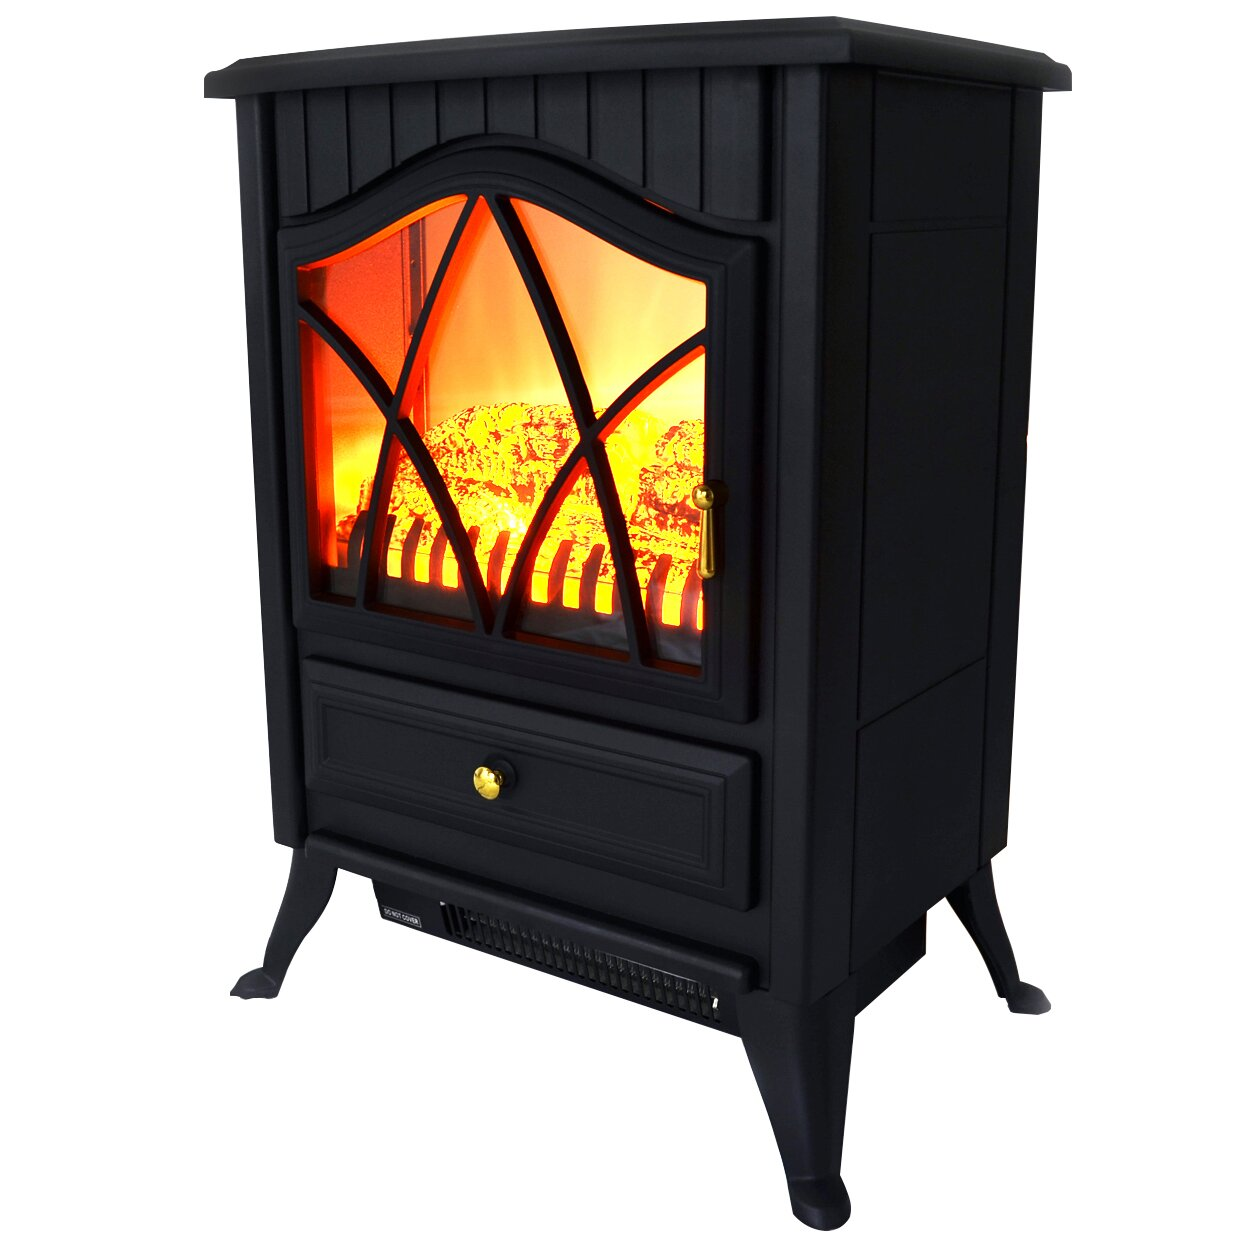 Vintage Electric Stoves For Sale ~ Stove for sale vintage electric